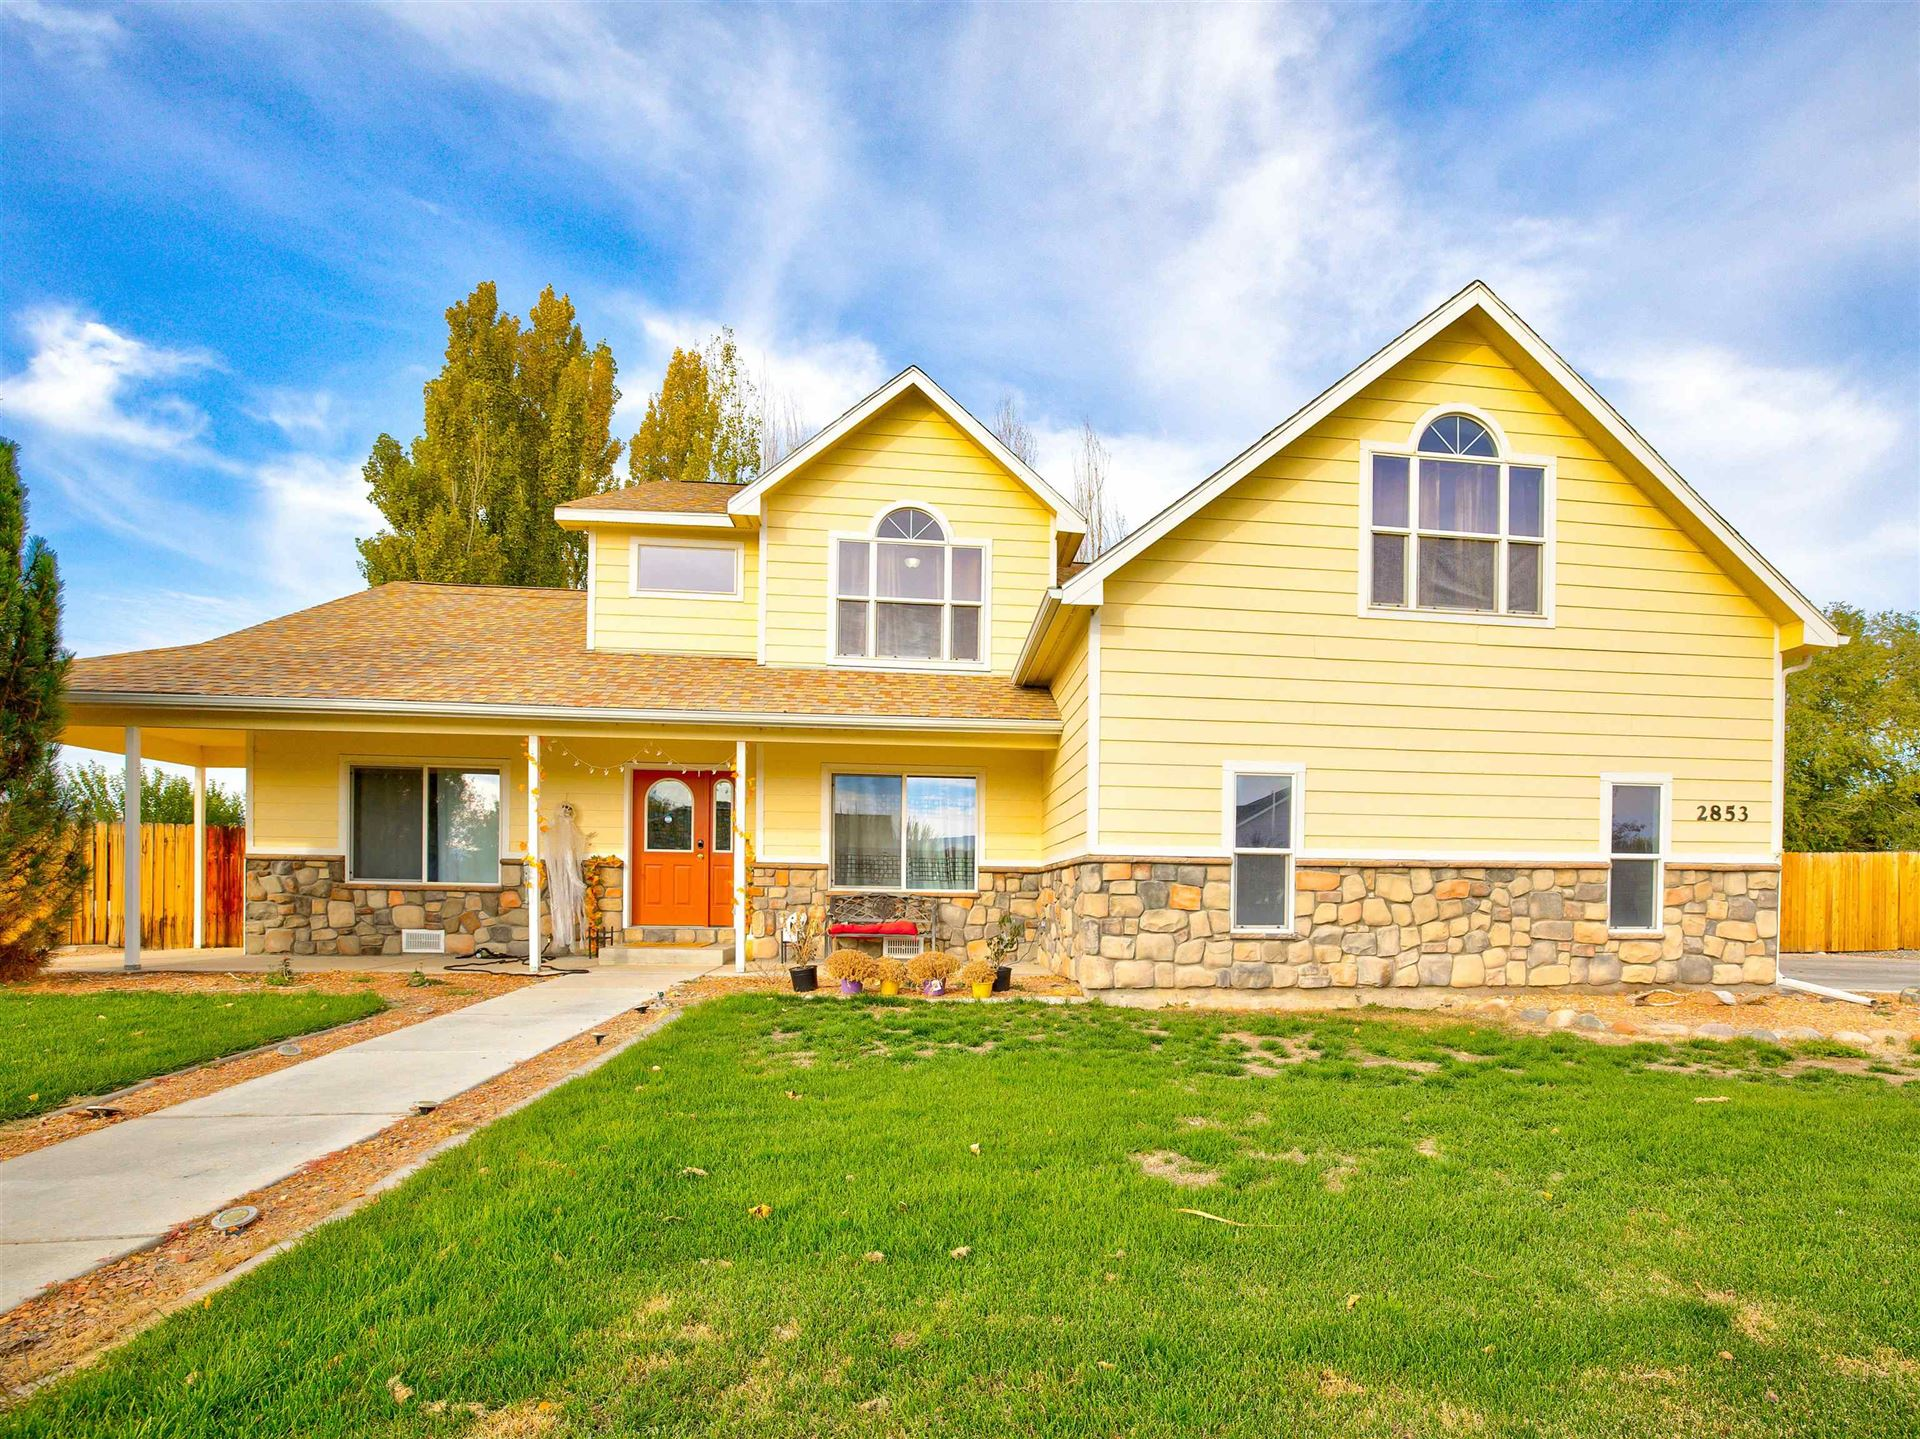 Photo of 2853 Emily Drive, Grand Junction, CO 81503 (MLS # 20215708)